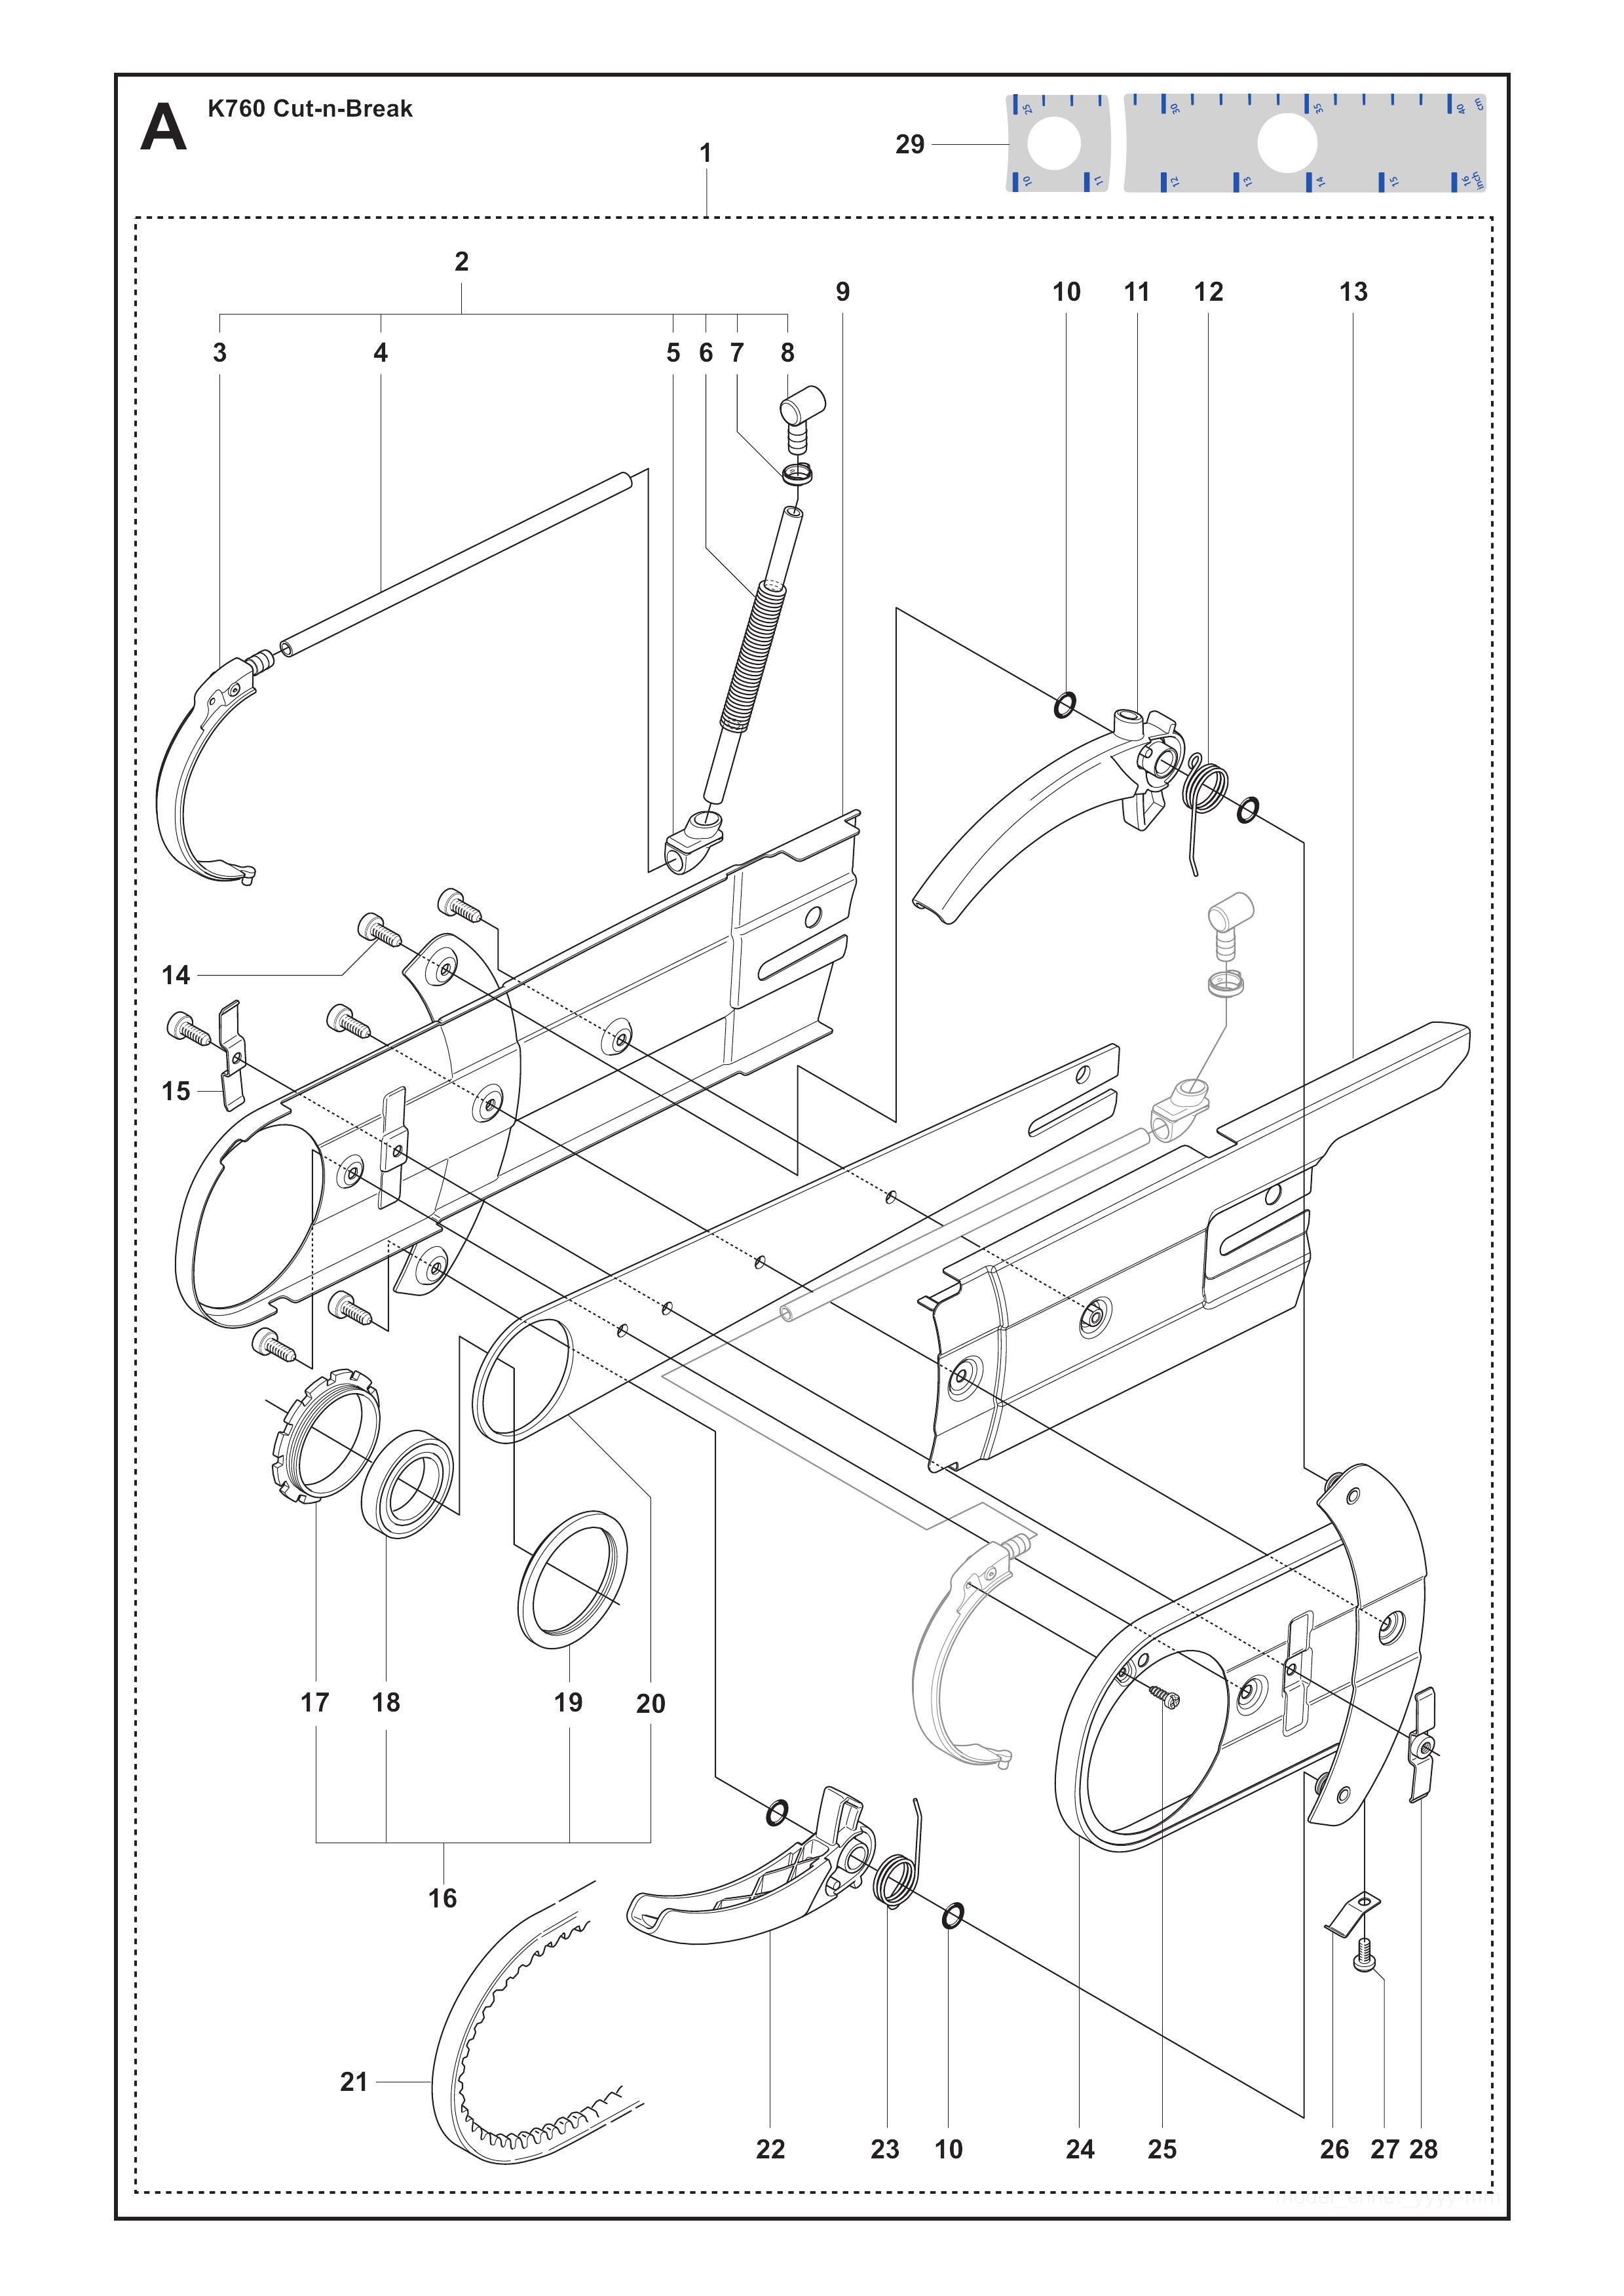 532110702 as well Husqvarna Wiring Schematics additionally Tractor Coloring Pages To Print likewise Tractor Coloring Pages To Print additionally Tracteur Ford 3600. on husqvarna trailer